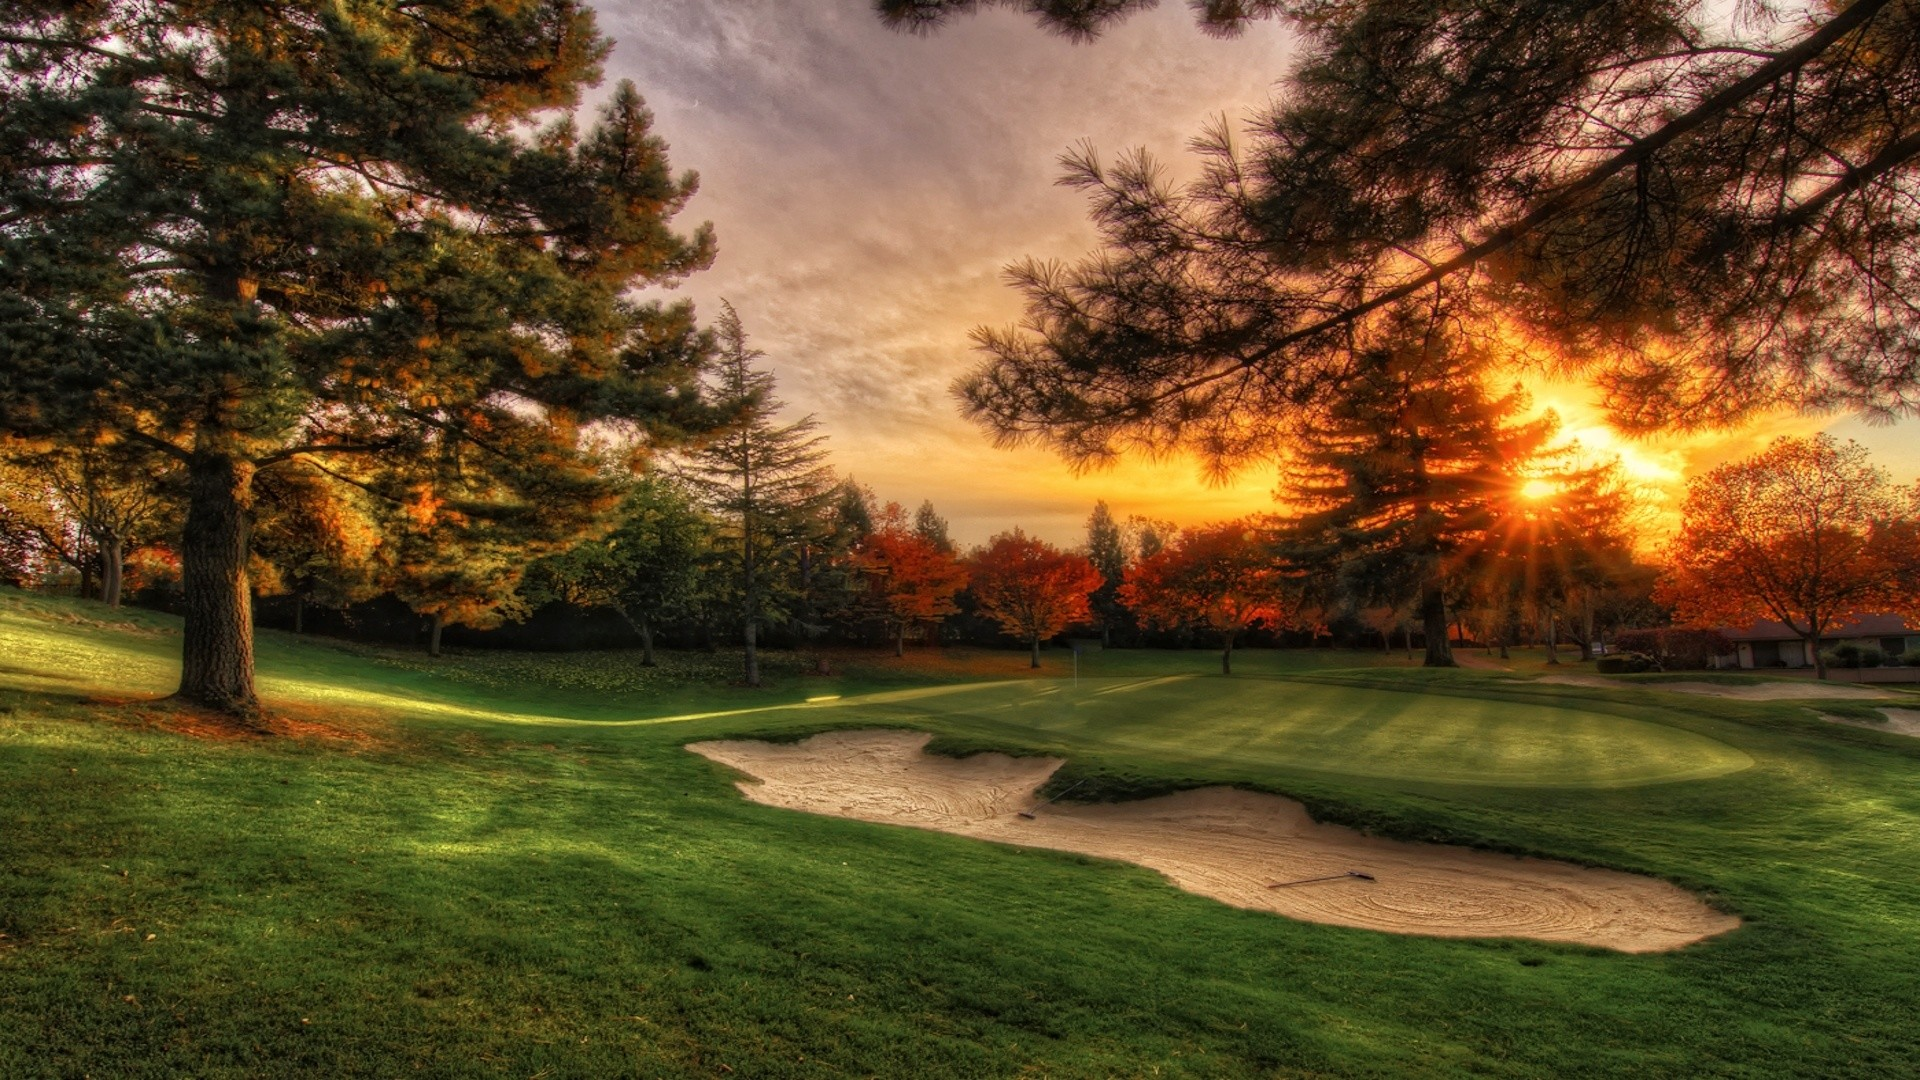 scenic wallpaper hdr   high resolution Download Golf Sunset Hdr  248786 background .